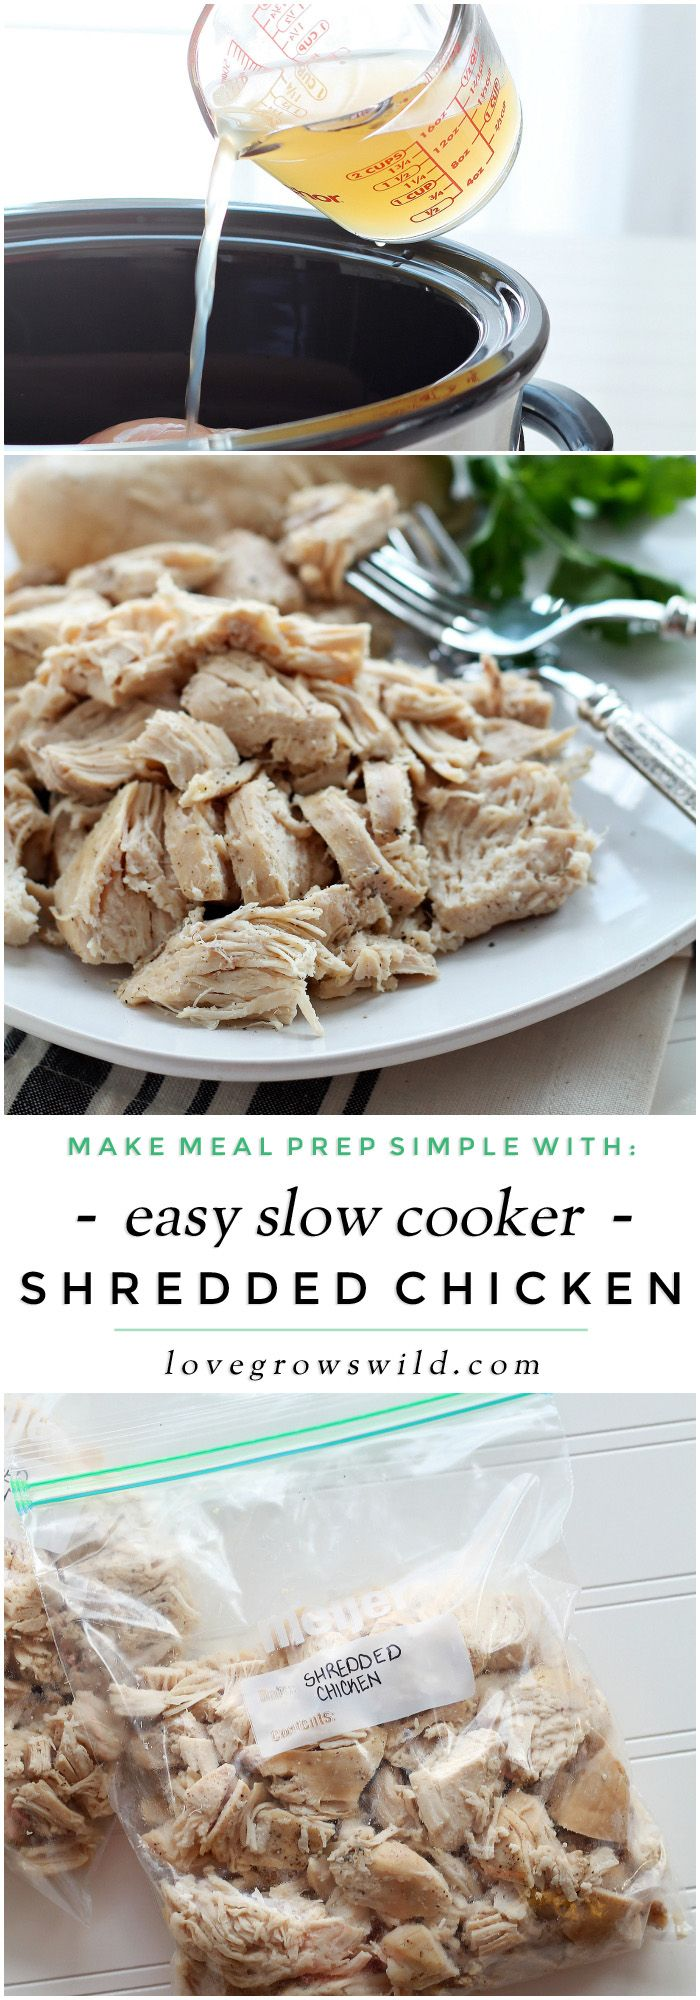 Slow Cooker Shredded Chicken - Love Grows Wild